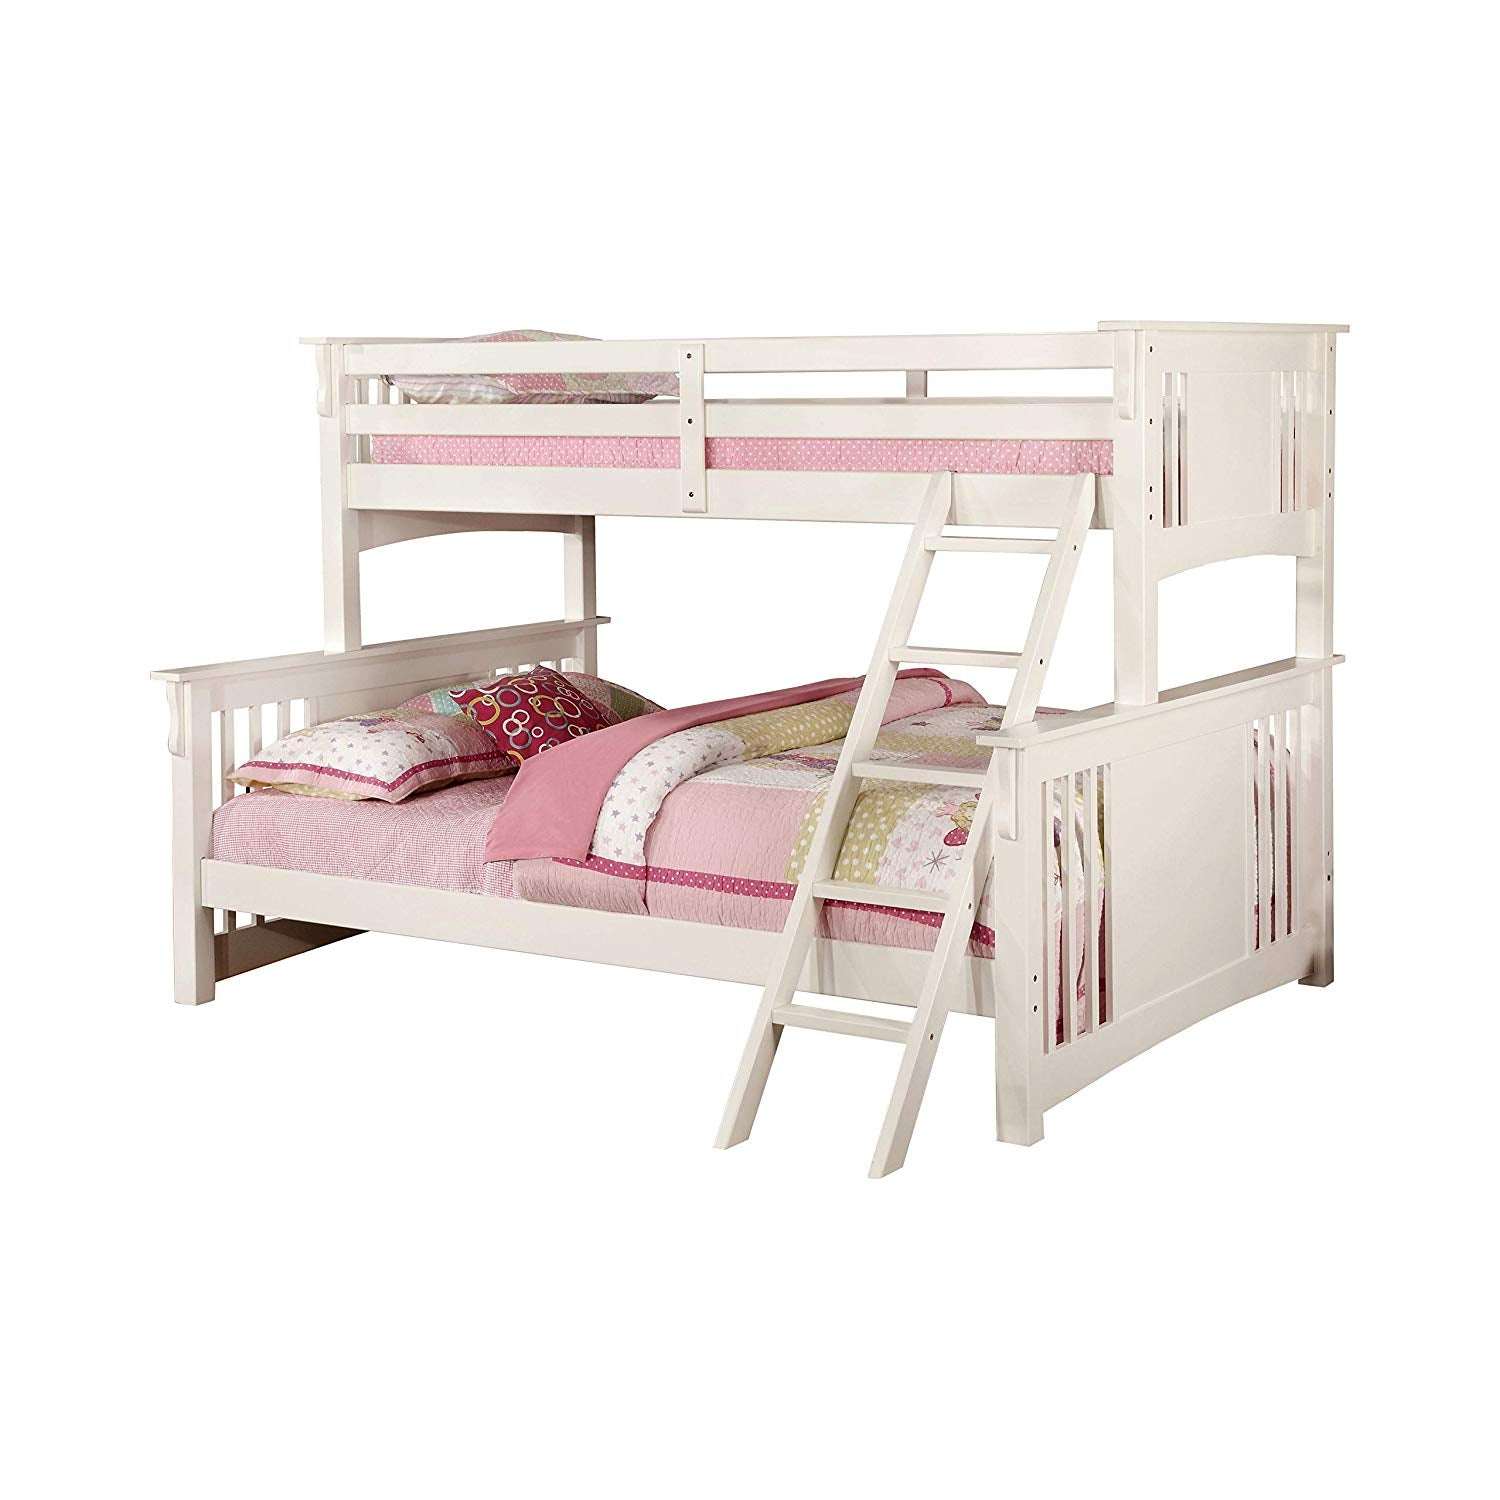 Furniture Of America Cm Bk604wh Spring Creek Transitional Mission White Twin Over Queen Bunk Bed Flatfair